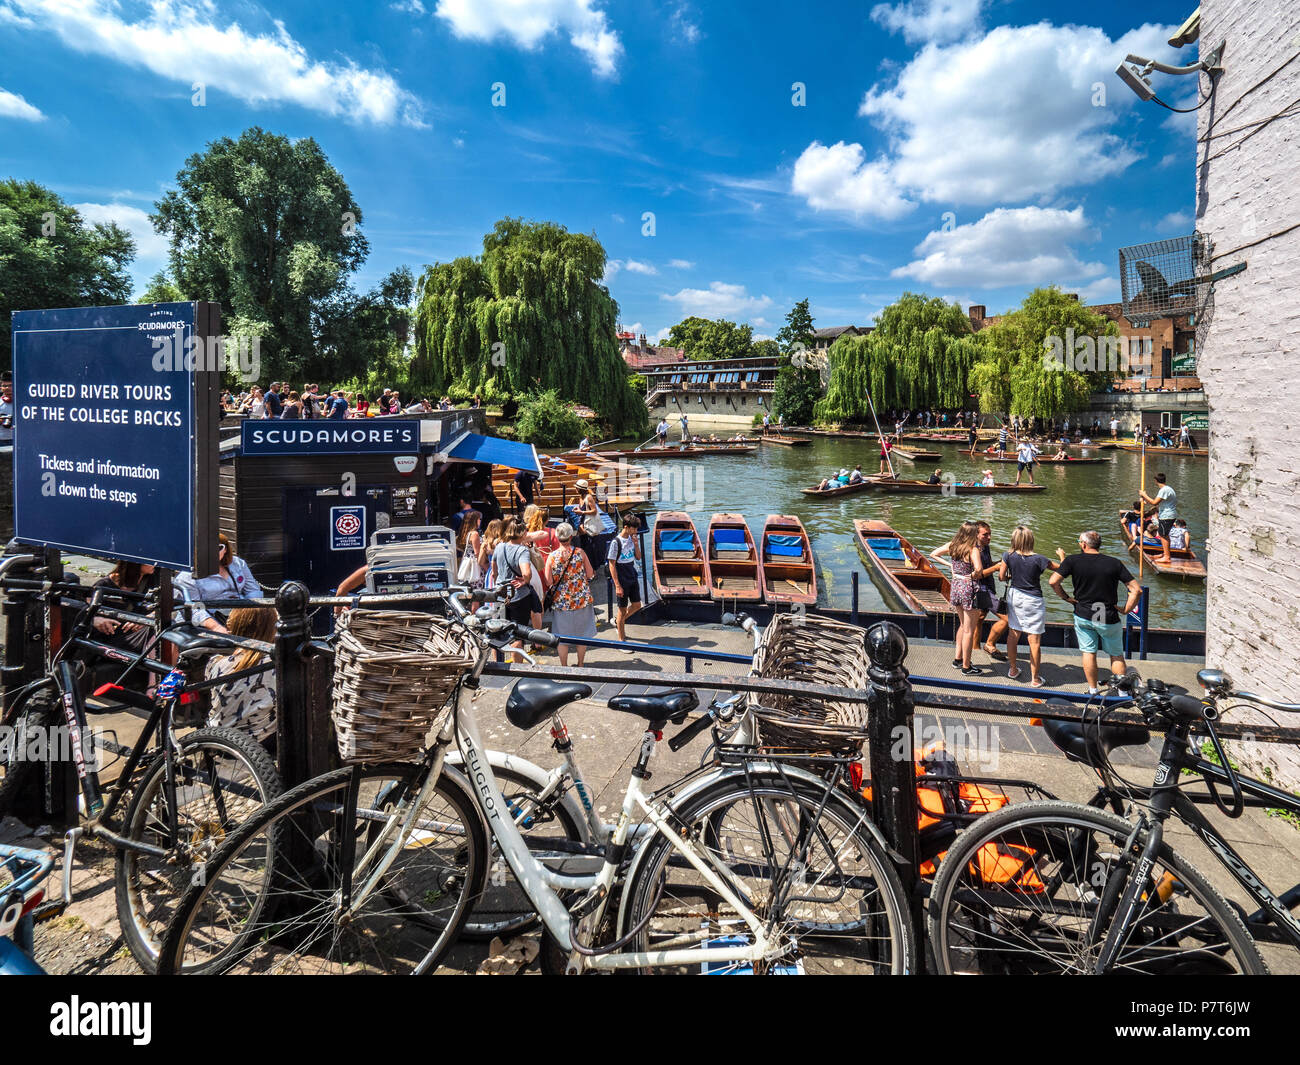 Cambridge Tourism - Scudamores Punts waiting for hire on a warm summer day - Stock Image